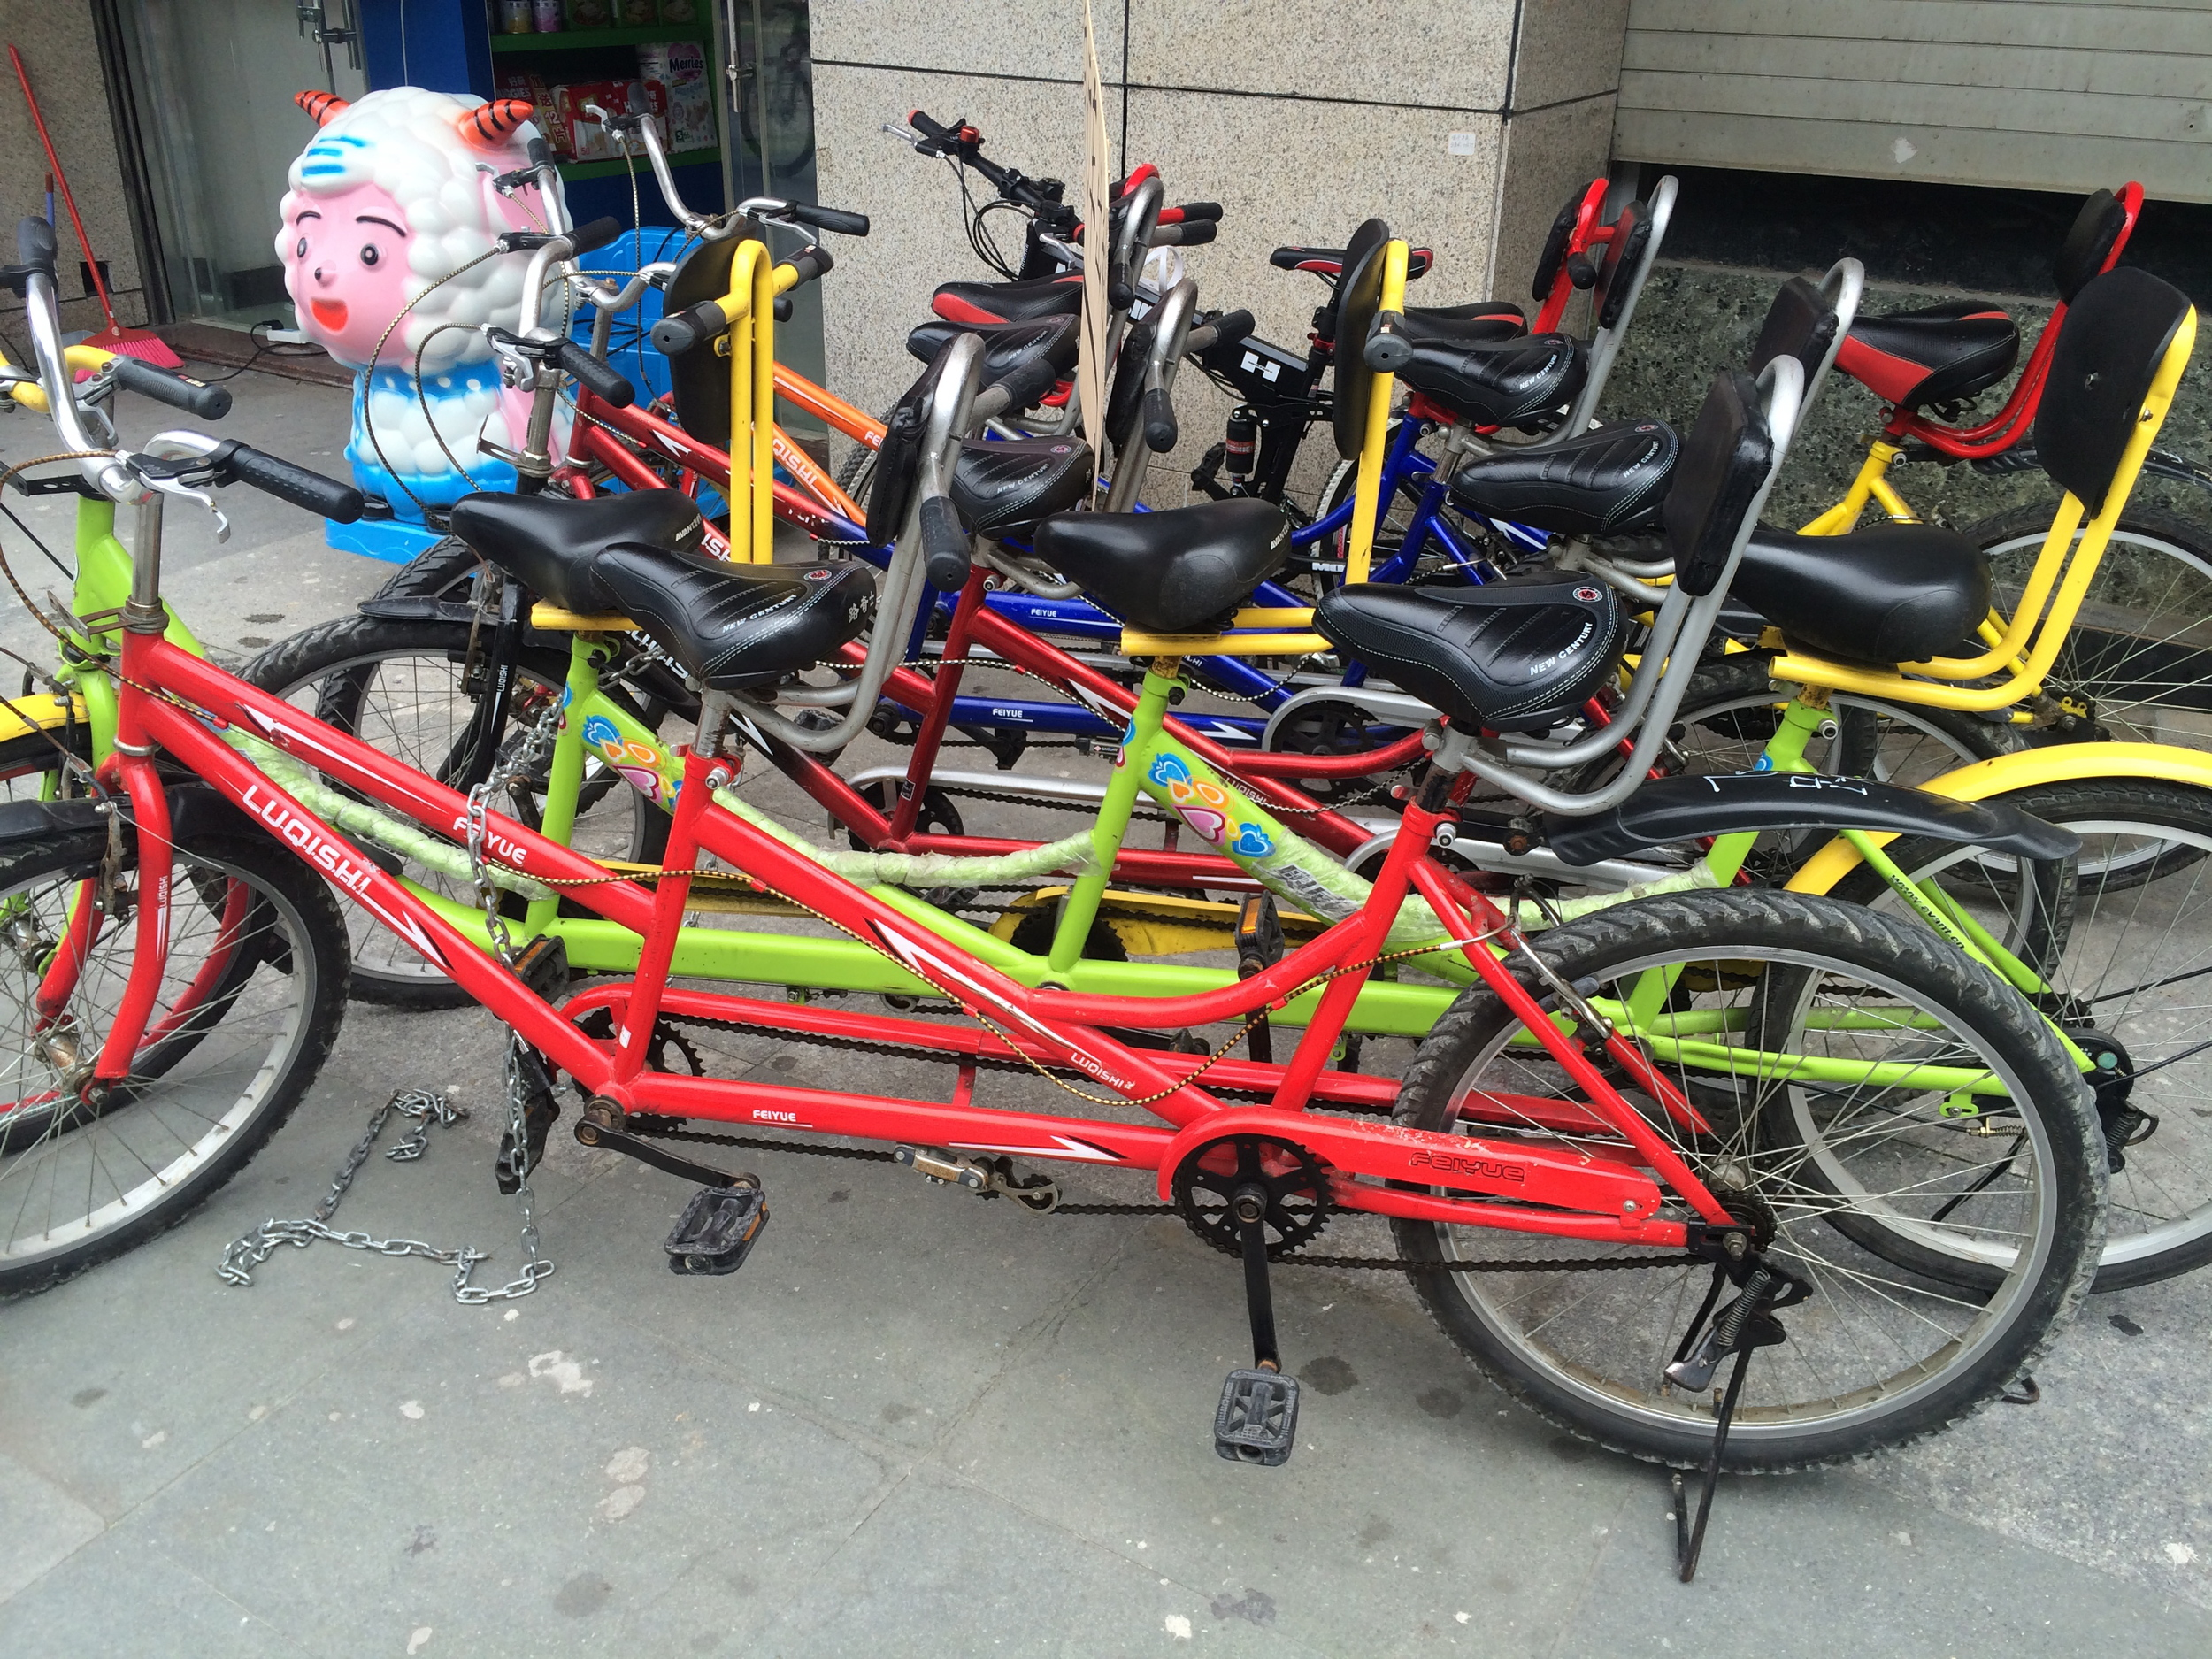 Not Just a tandem with 2 seat but also with 3.